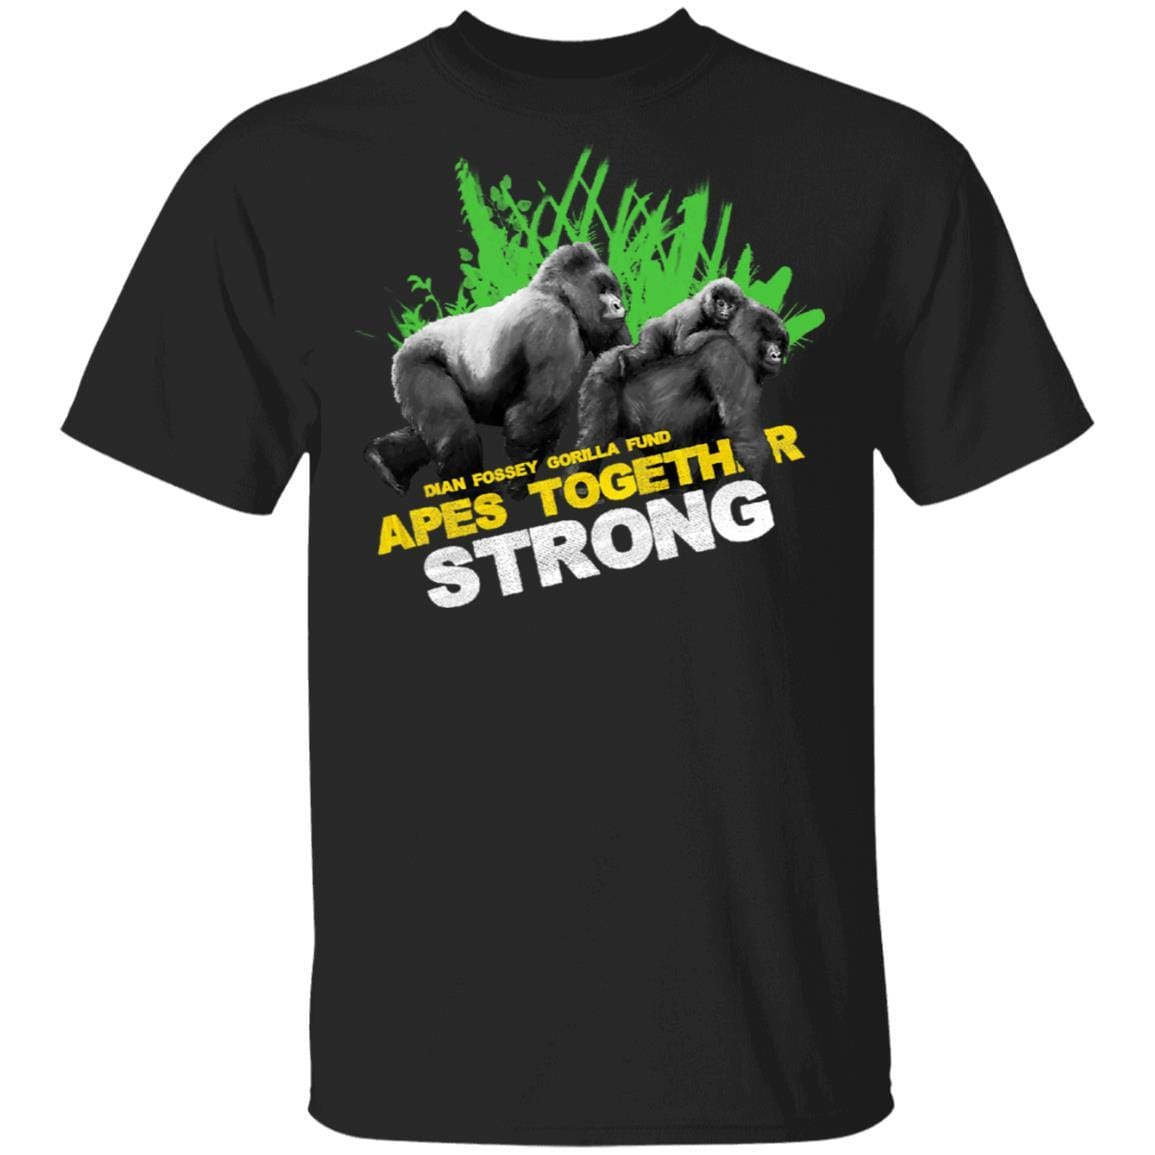 Gorilla Dian Fossey Gorilla Fund Apes Together Strong T-Shirts, Hoodies 1049-9953-93031551-48144 - Tee Ript